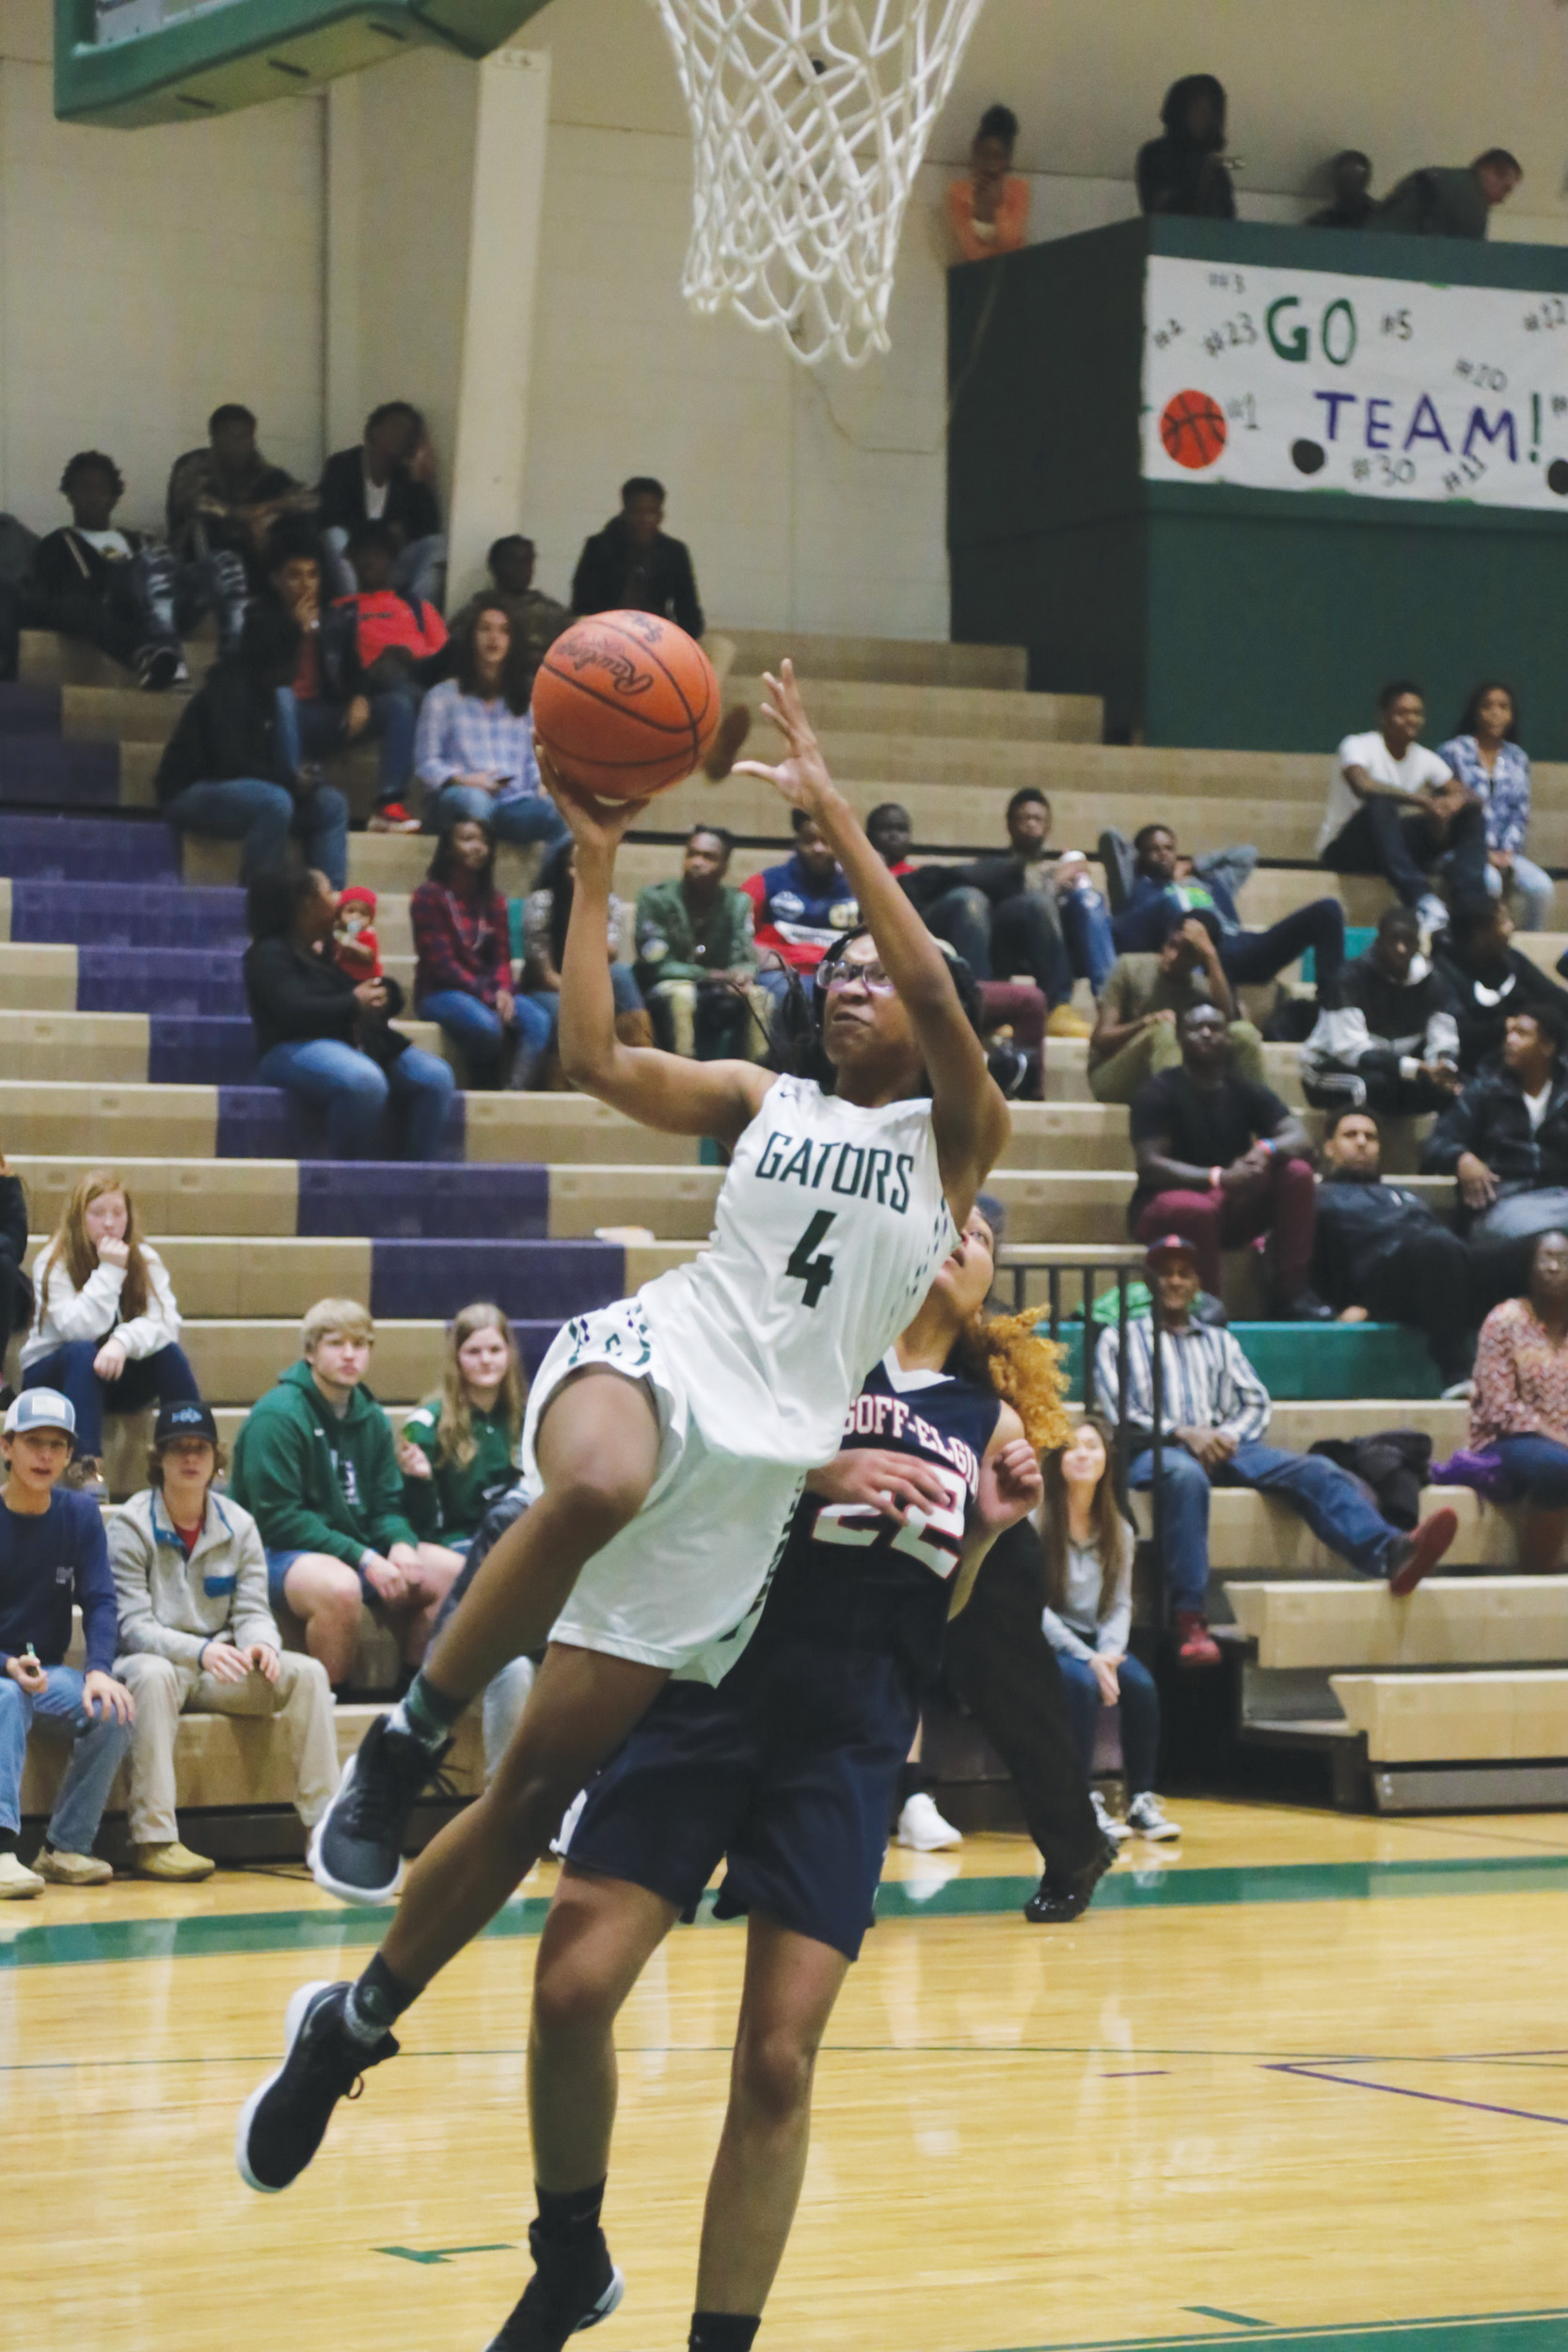 Lakewood's Lashala Harvin goes for a layup during the Lady Gators' 54-19 victory over Lugoff-Elgin on Friday at The Swamp. Harvin led all scorers in the game with 18 points.